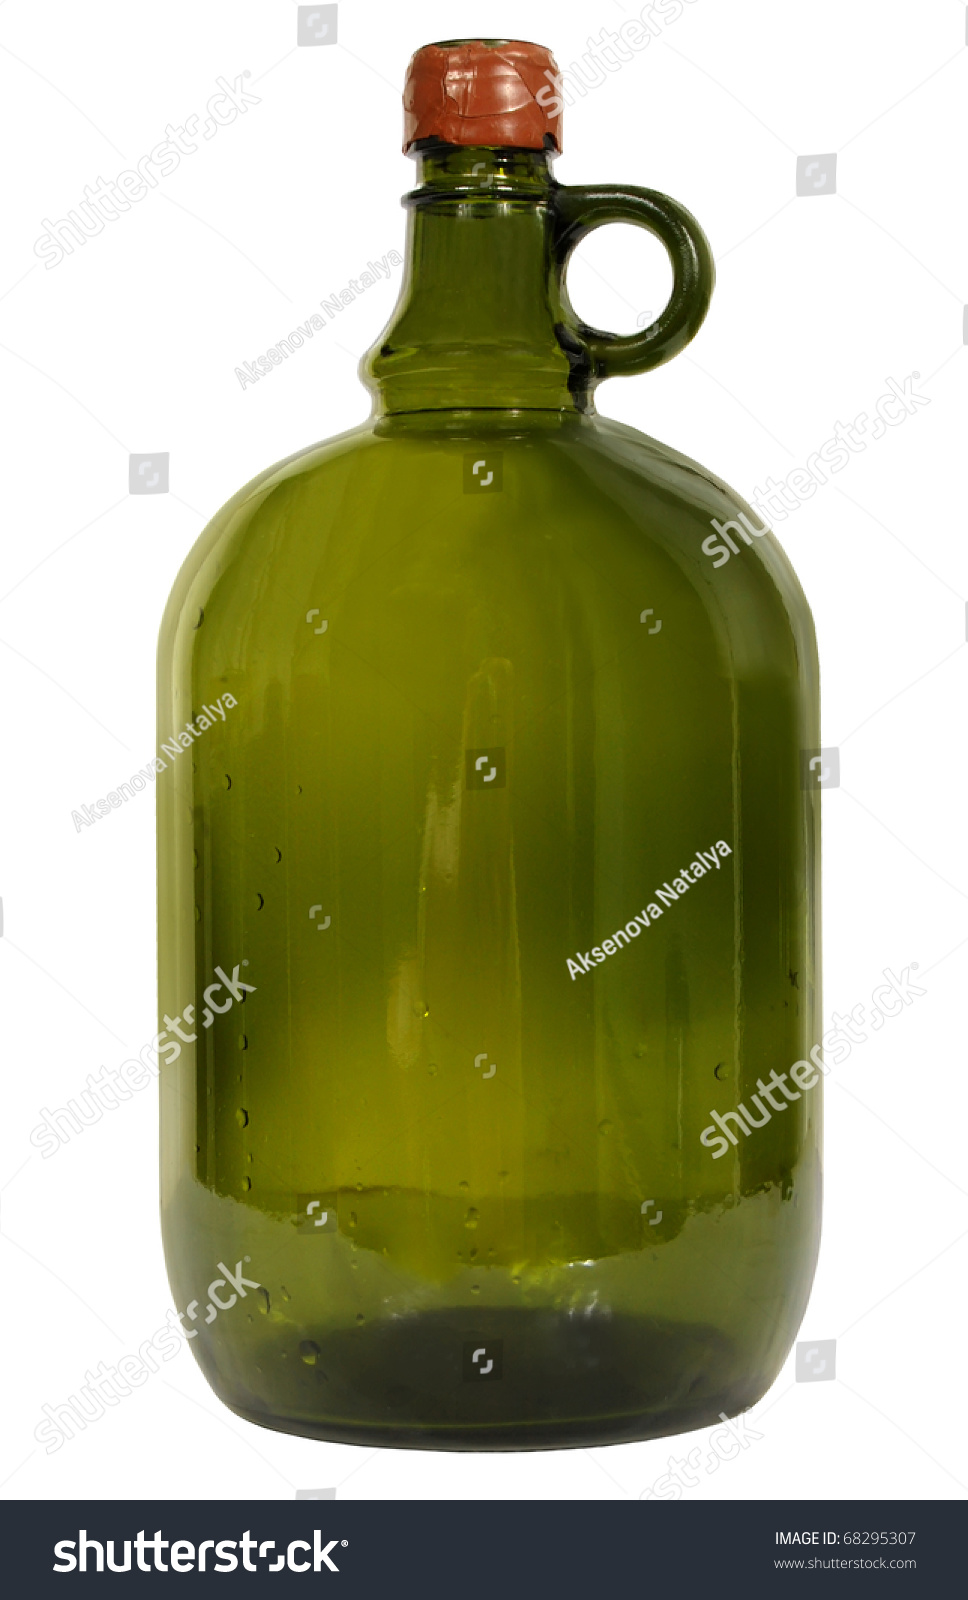 Big green glass wine bottle on stock photo 68295307 for Green glass wine bottles